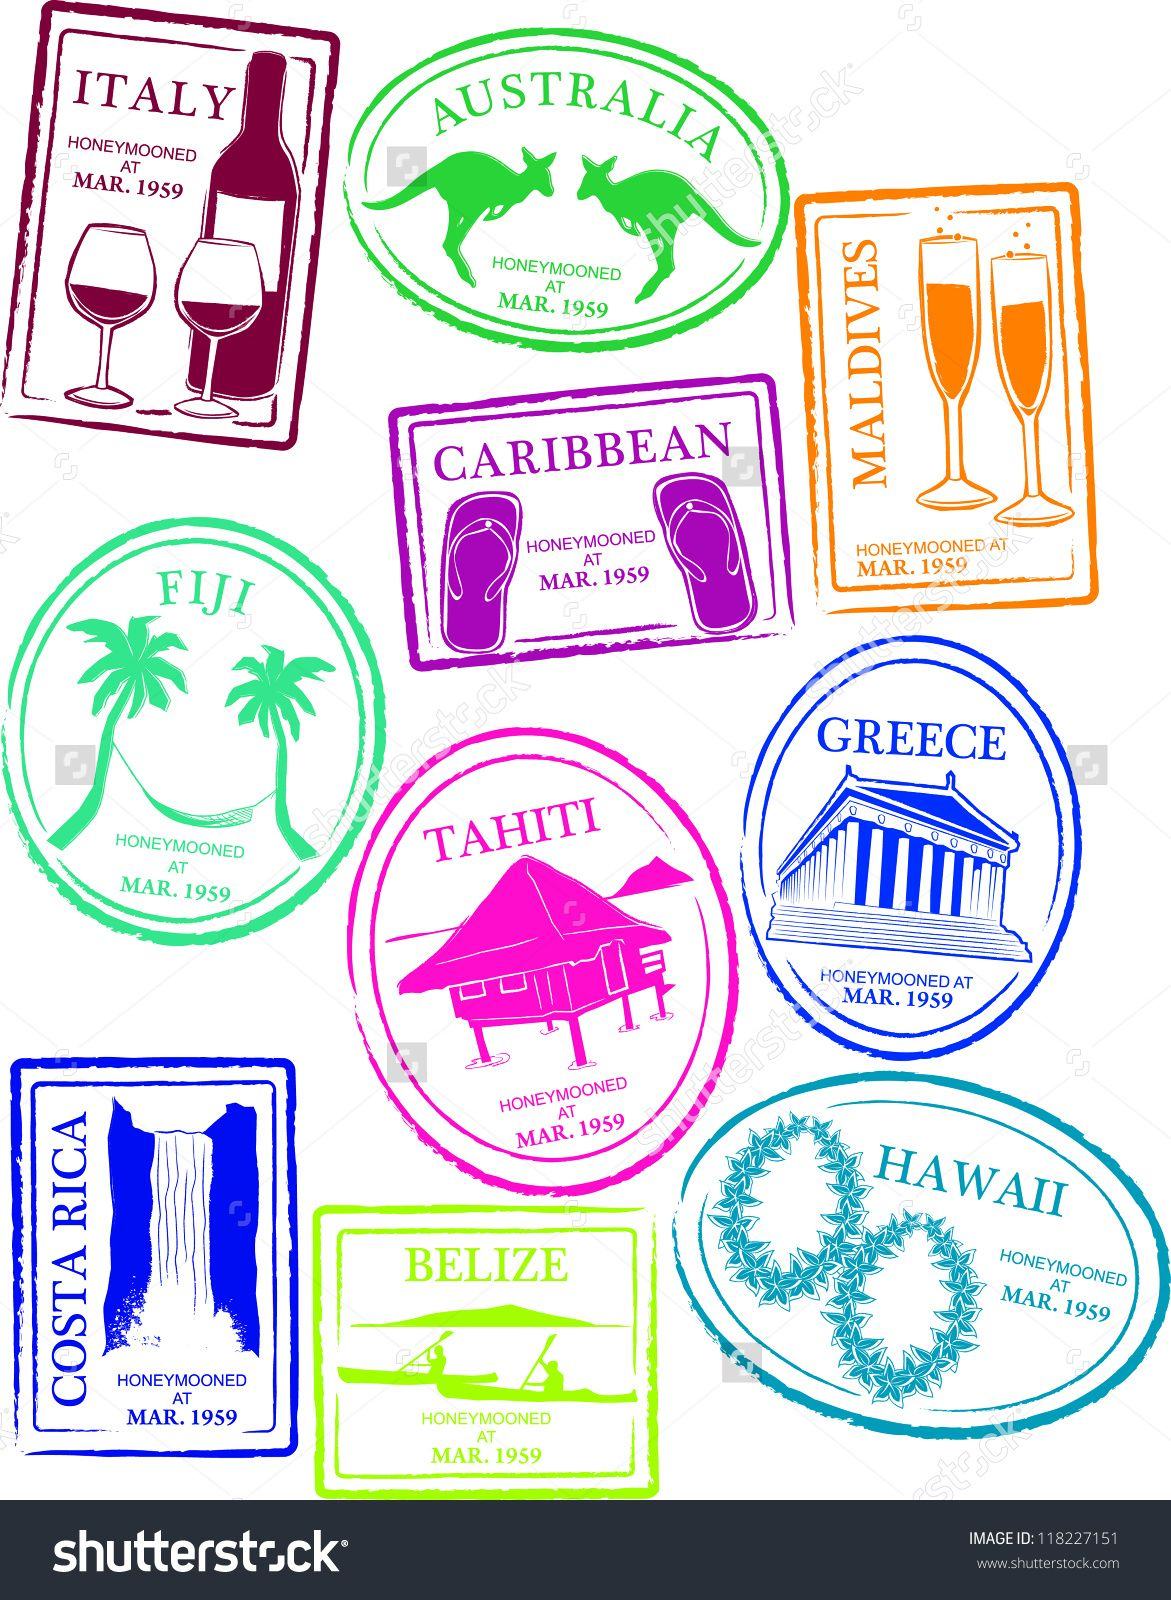 Countries Of The World Passport Stamps Collect Them All